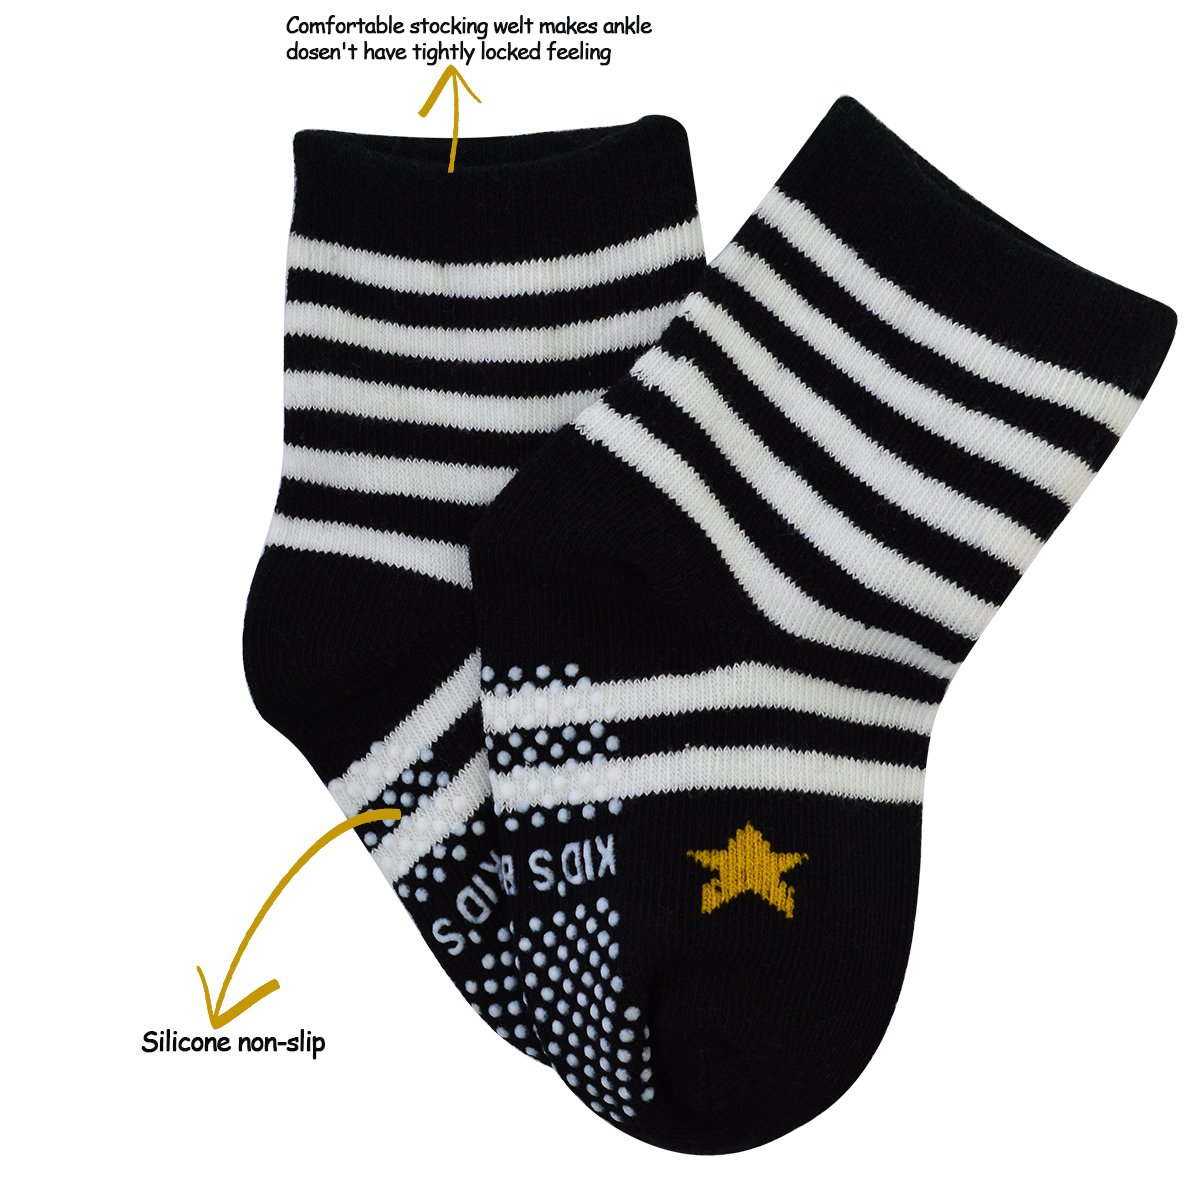 6 Pairs Assorted Anti Slip Ankle Cotton Socks with Grip Baby Toddler Non-skid Cotton Stretch Knit Stripes Star Non Slip Socks Slippers for 12-36 Months Boys Girls Infant Kids